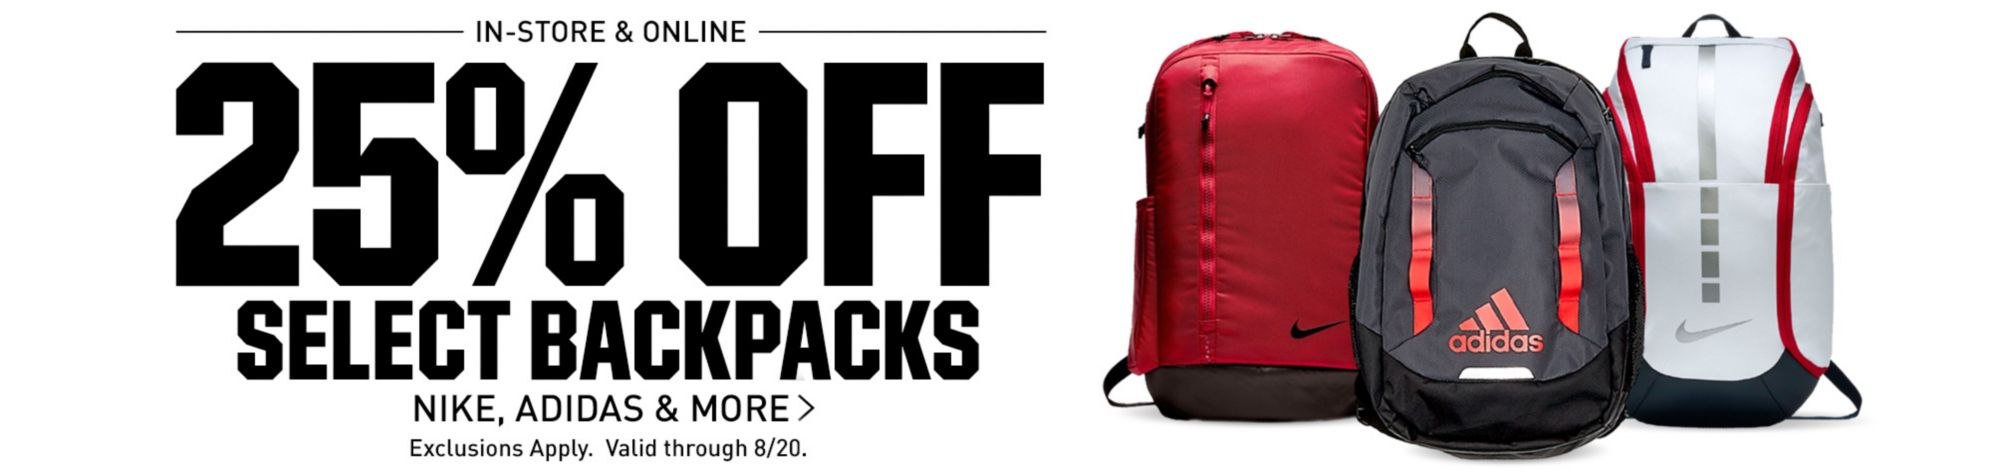 25% Off Select Backpacks - Valid Through 8/20